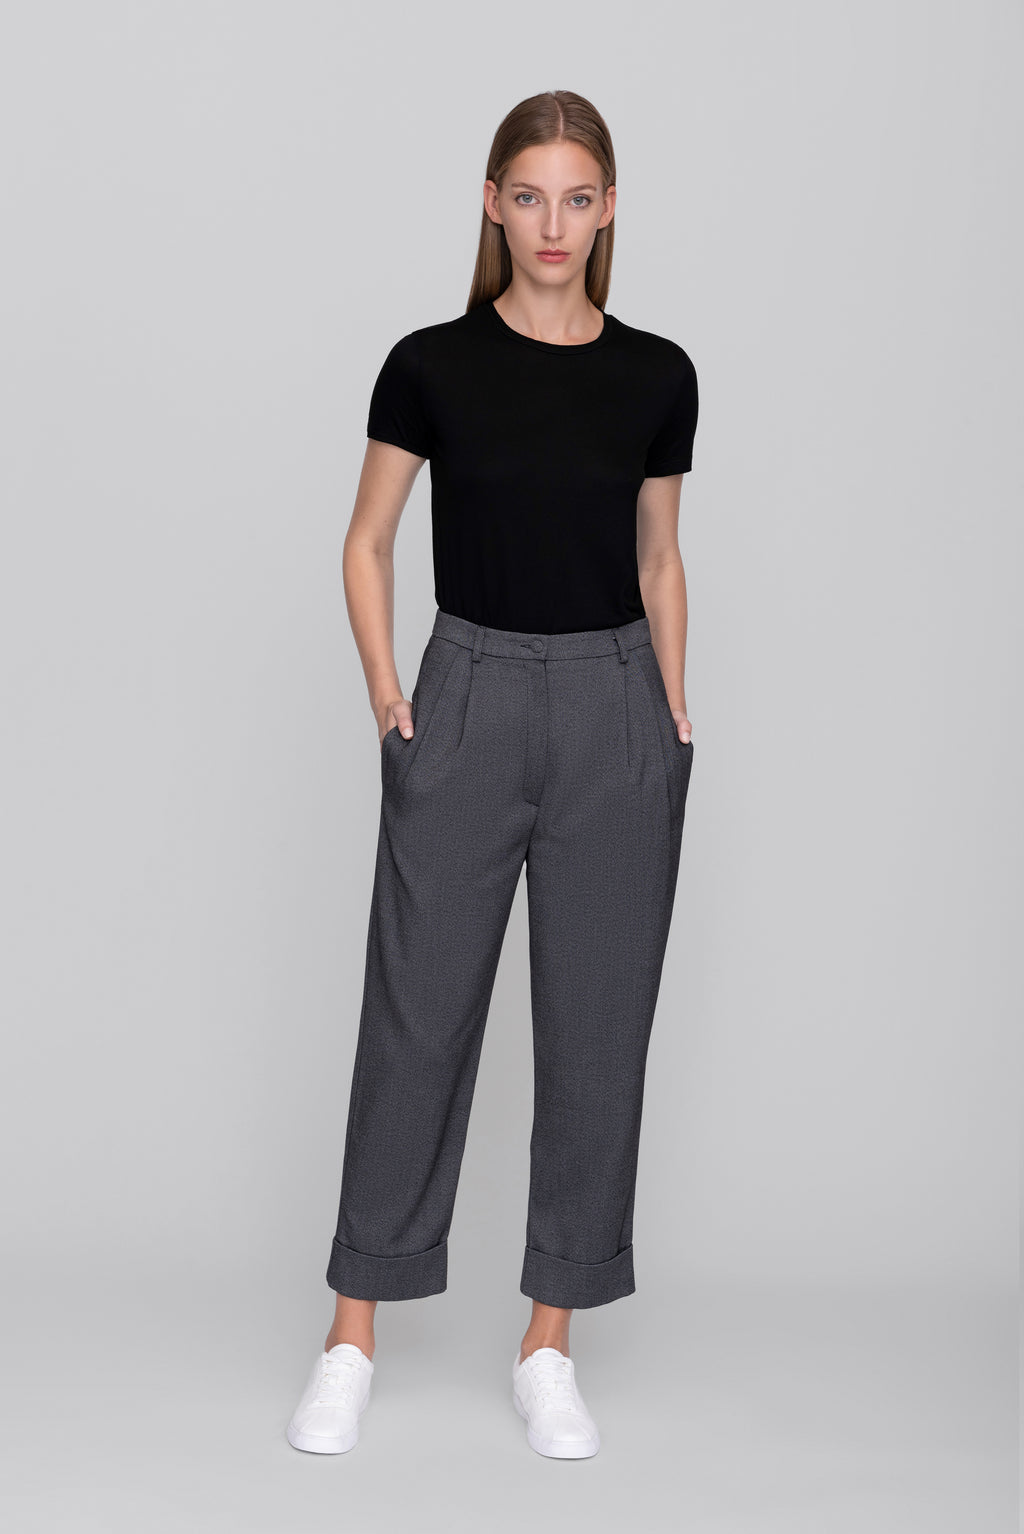 The Salt & Pepper Boyfriend Pants